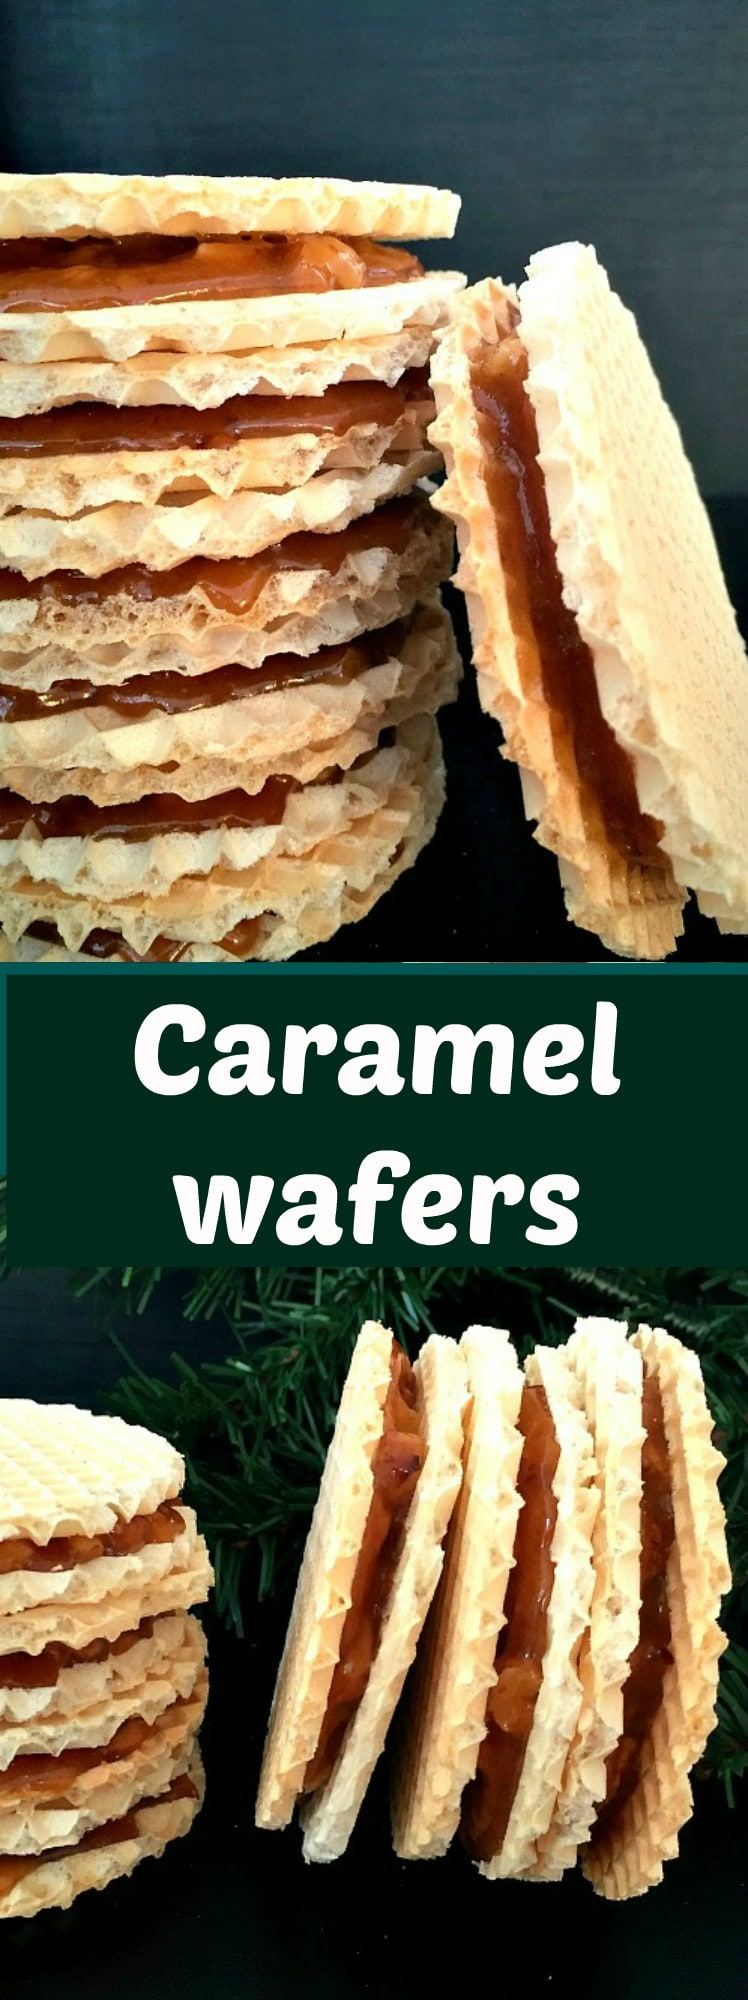 Caramel wafers recipe, a scrumptious homemade dessert recipe that is so crunchy and absolutely delicious.